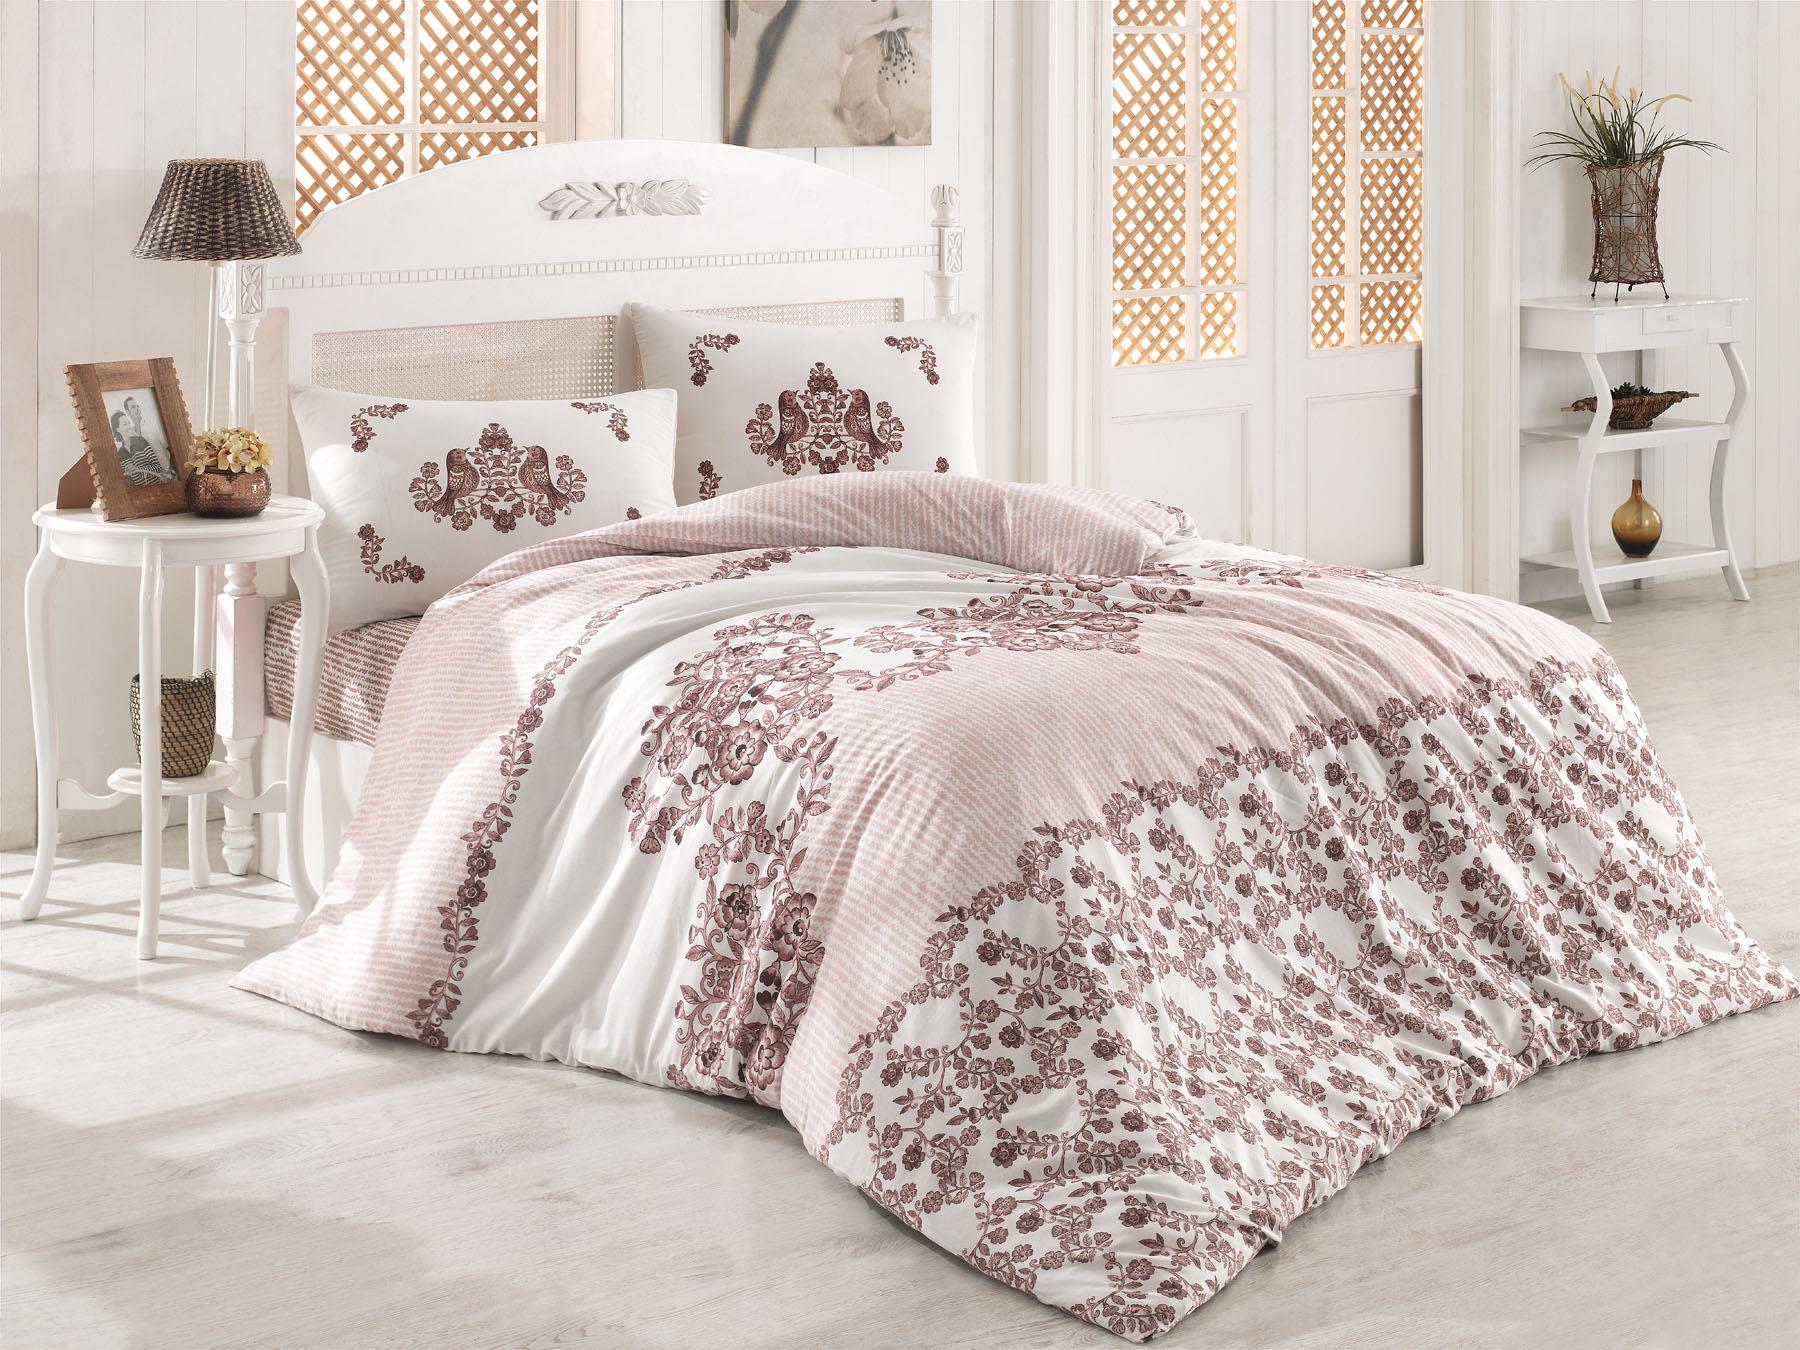 Lady Fashion Hüma Coffee Double Personality Terry Cotton Duvet Cover Set